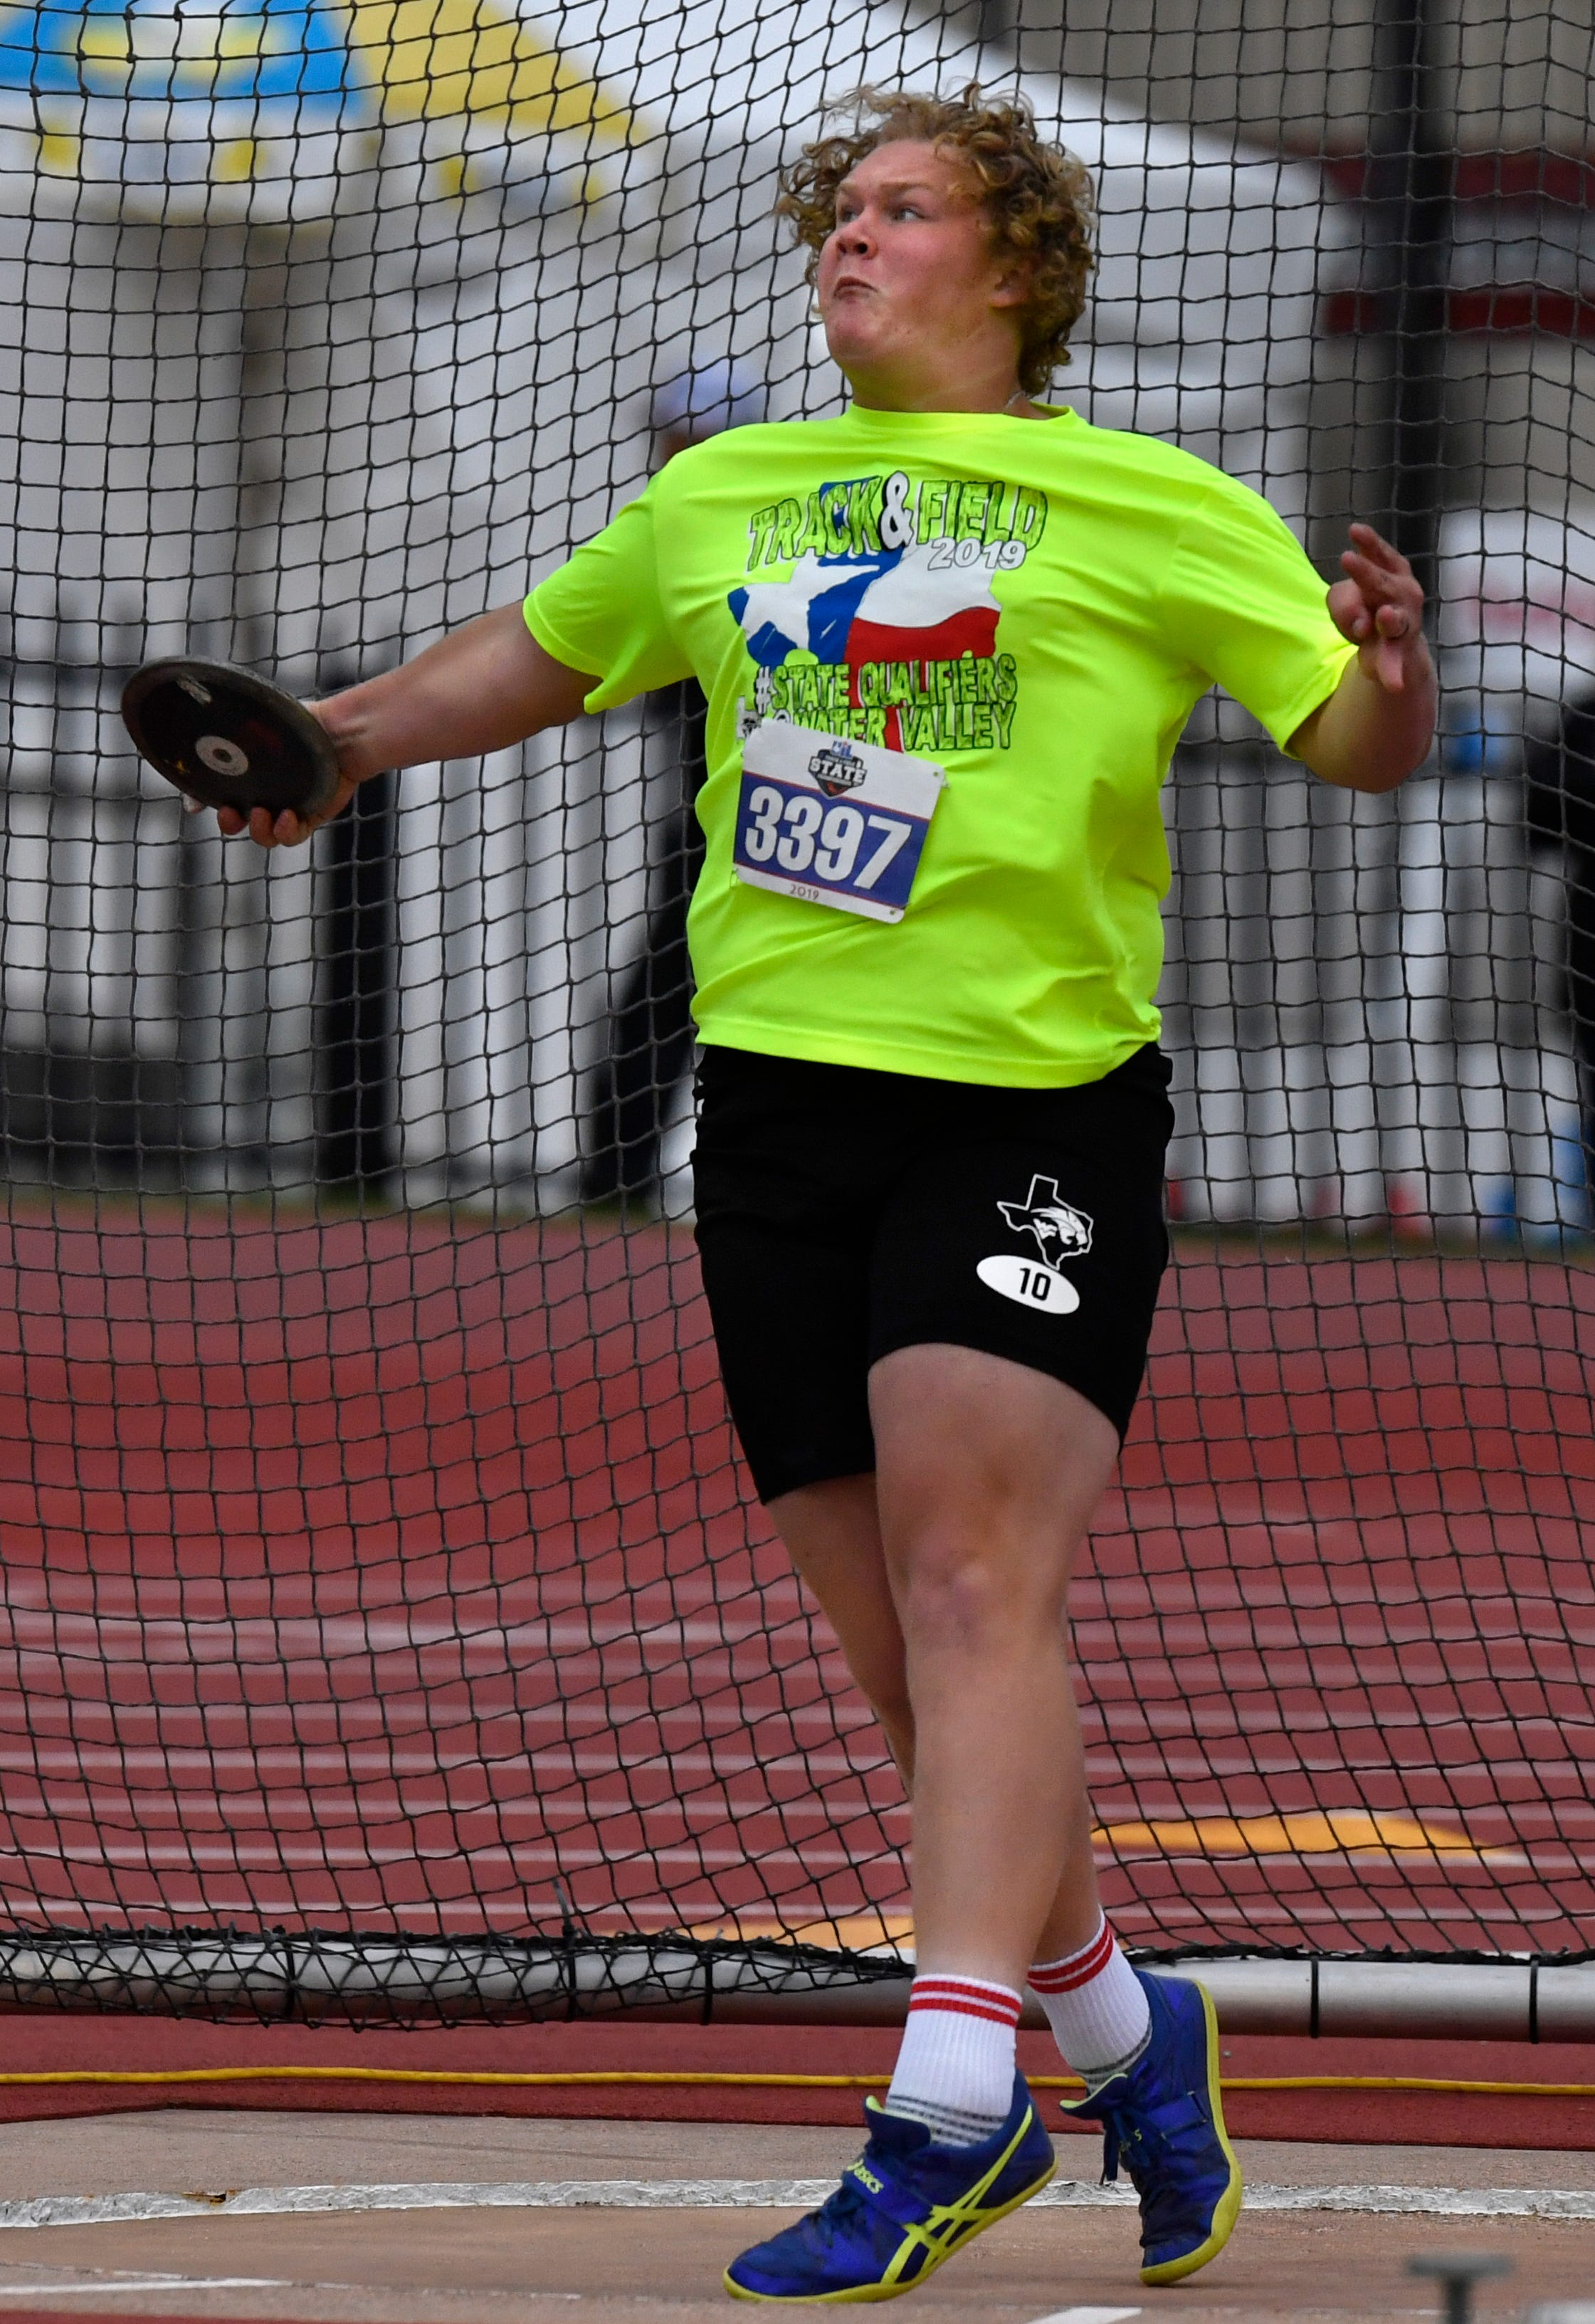 Hunter Sturgess of Water Valley makes a throw in the 1A Boys Discus during the UIL State Track & Field Championships in Austin Friday May 10, 2019.